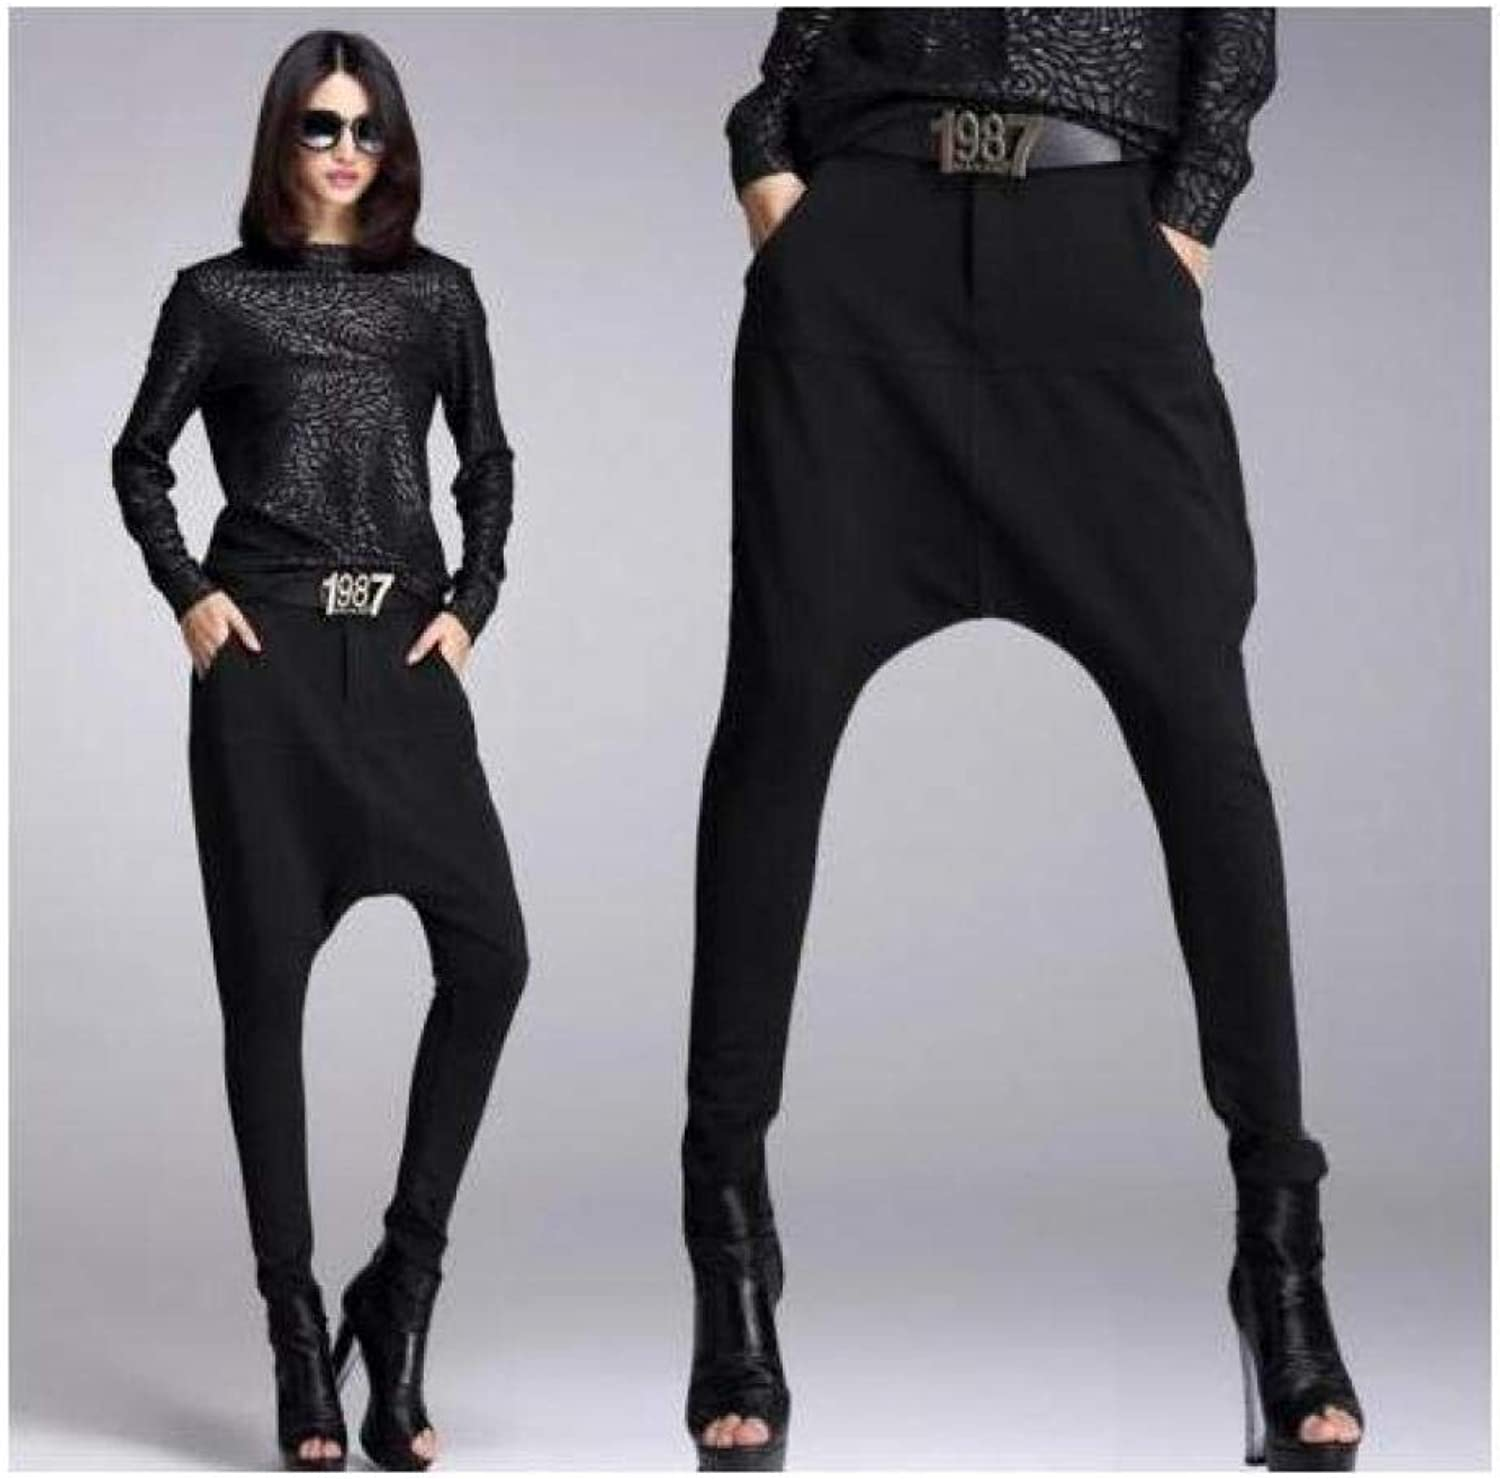 FidgetFidget Pants Casual Pencil Women's Black Harem Clubwear Dancing Trousers Elastic Q4015